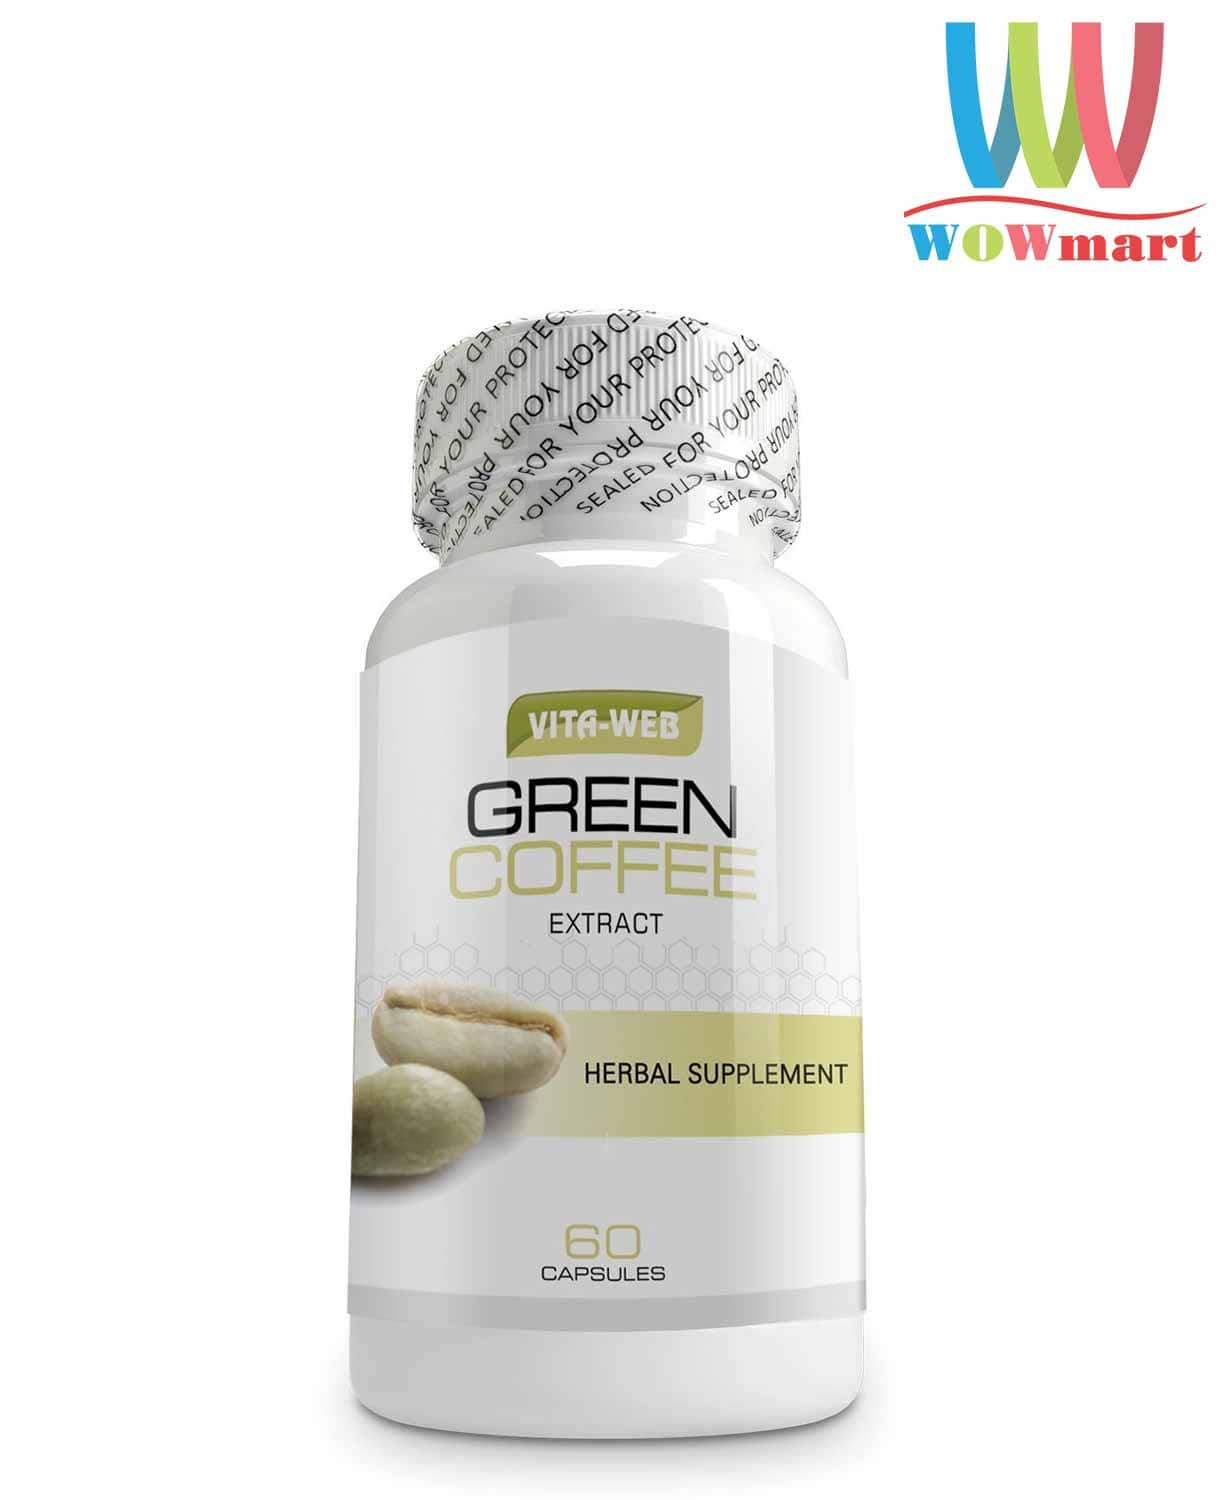 thuoc-giam-can-vita-web-green-coffee-bean-extract-60-vien